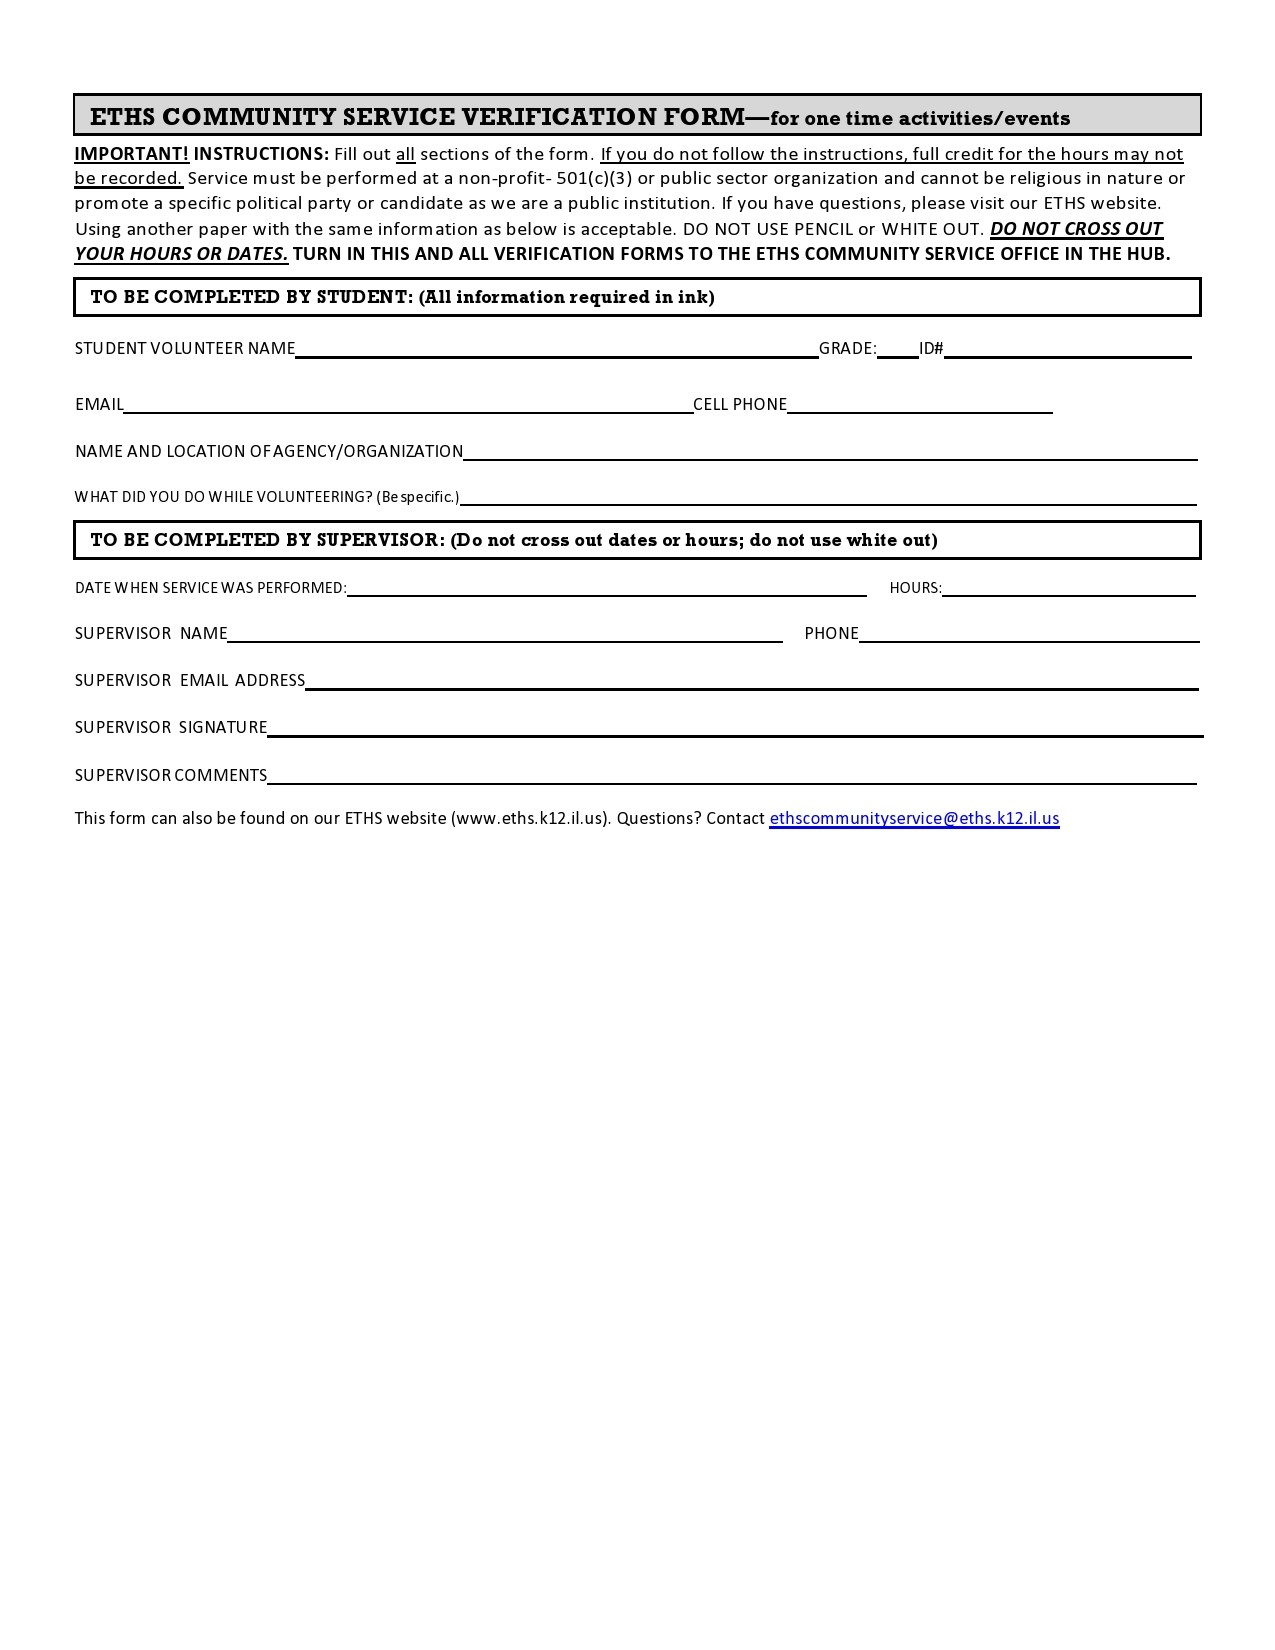 Free community service form 14